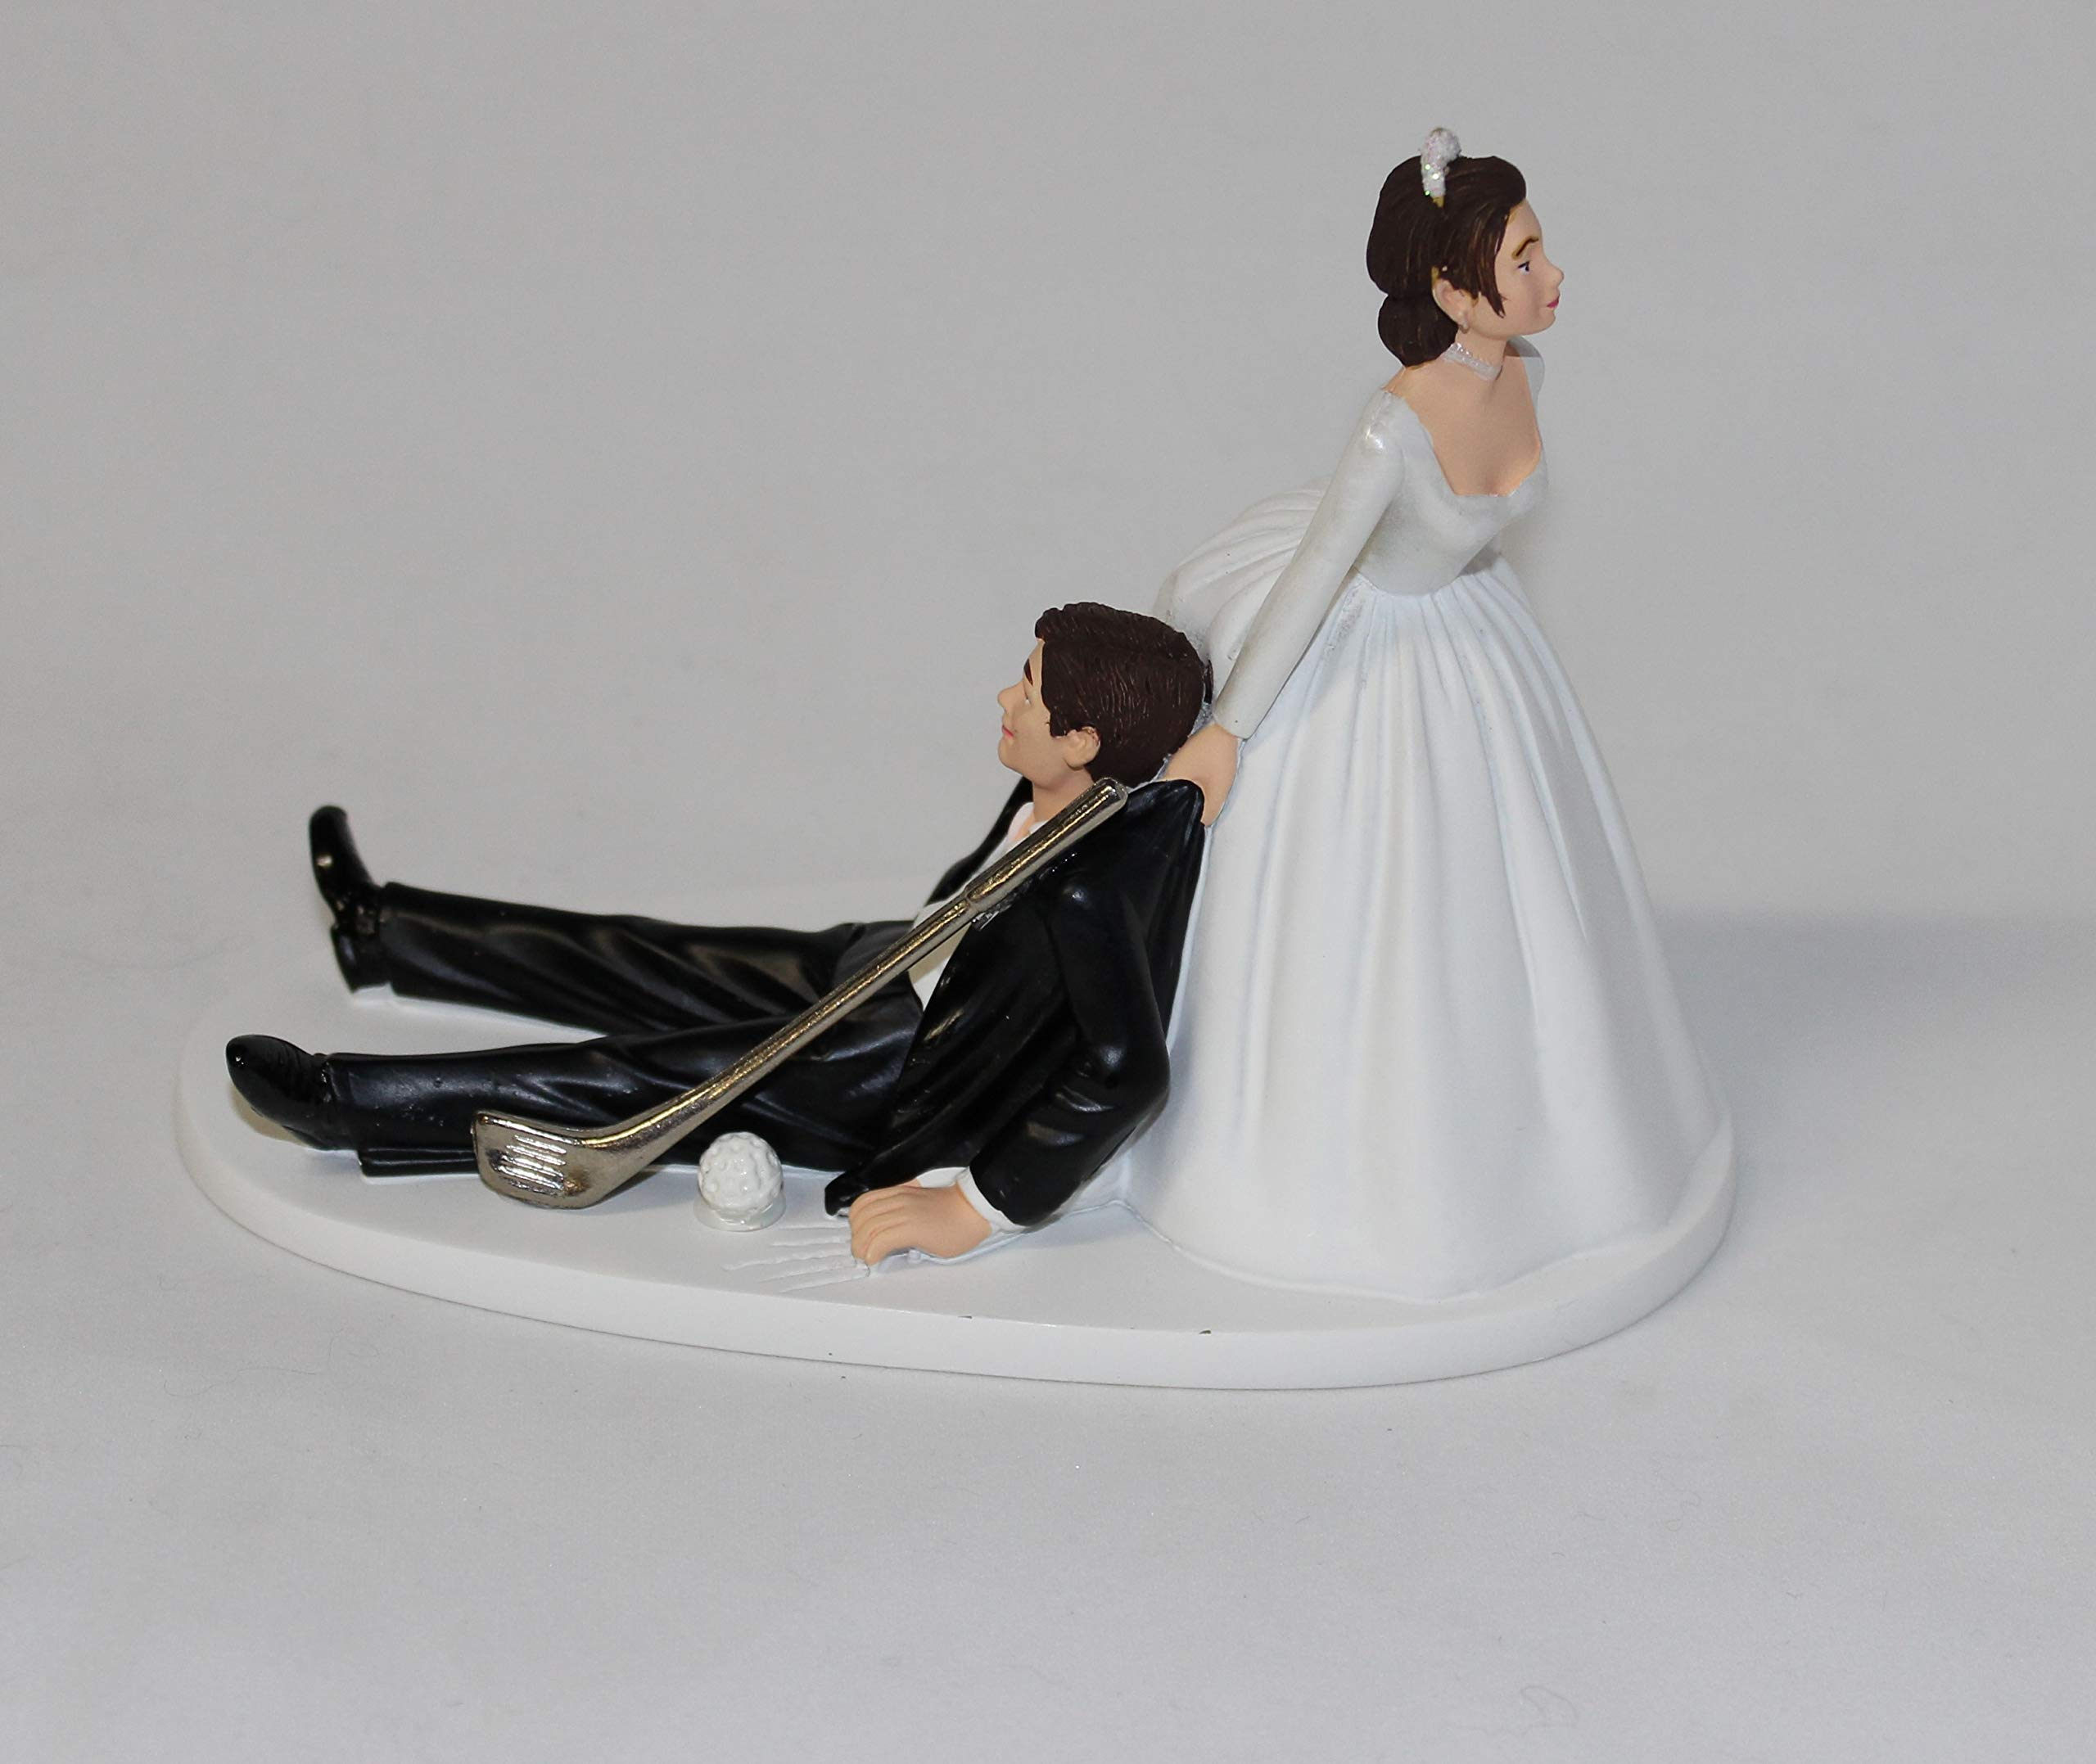 Wedding Party Reception Golf Golfer Clubs Dark Hair Couple Cake Topper by Custom Design Wedding Supplies by Suzanne (Image #1)